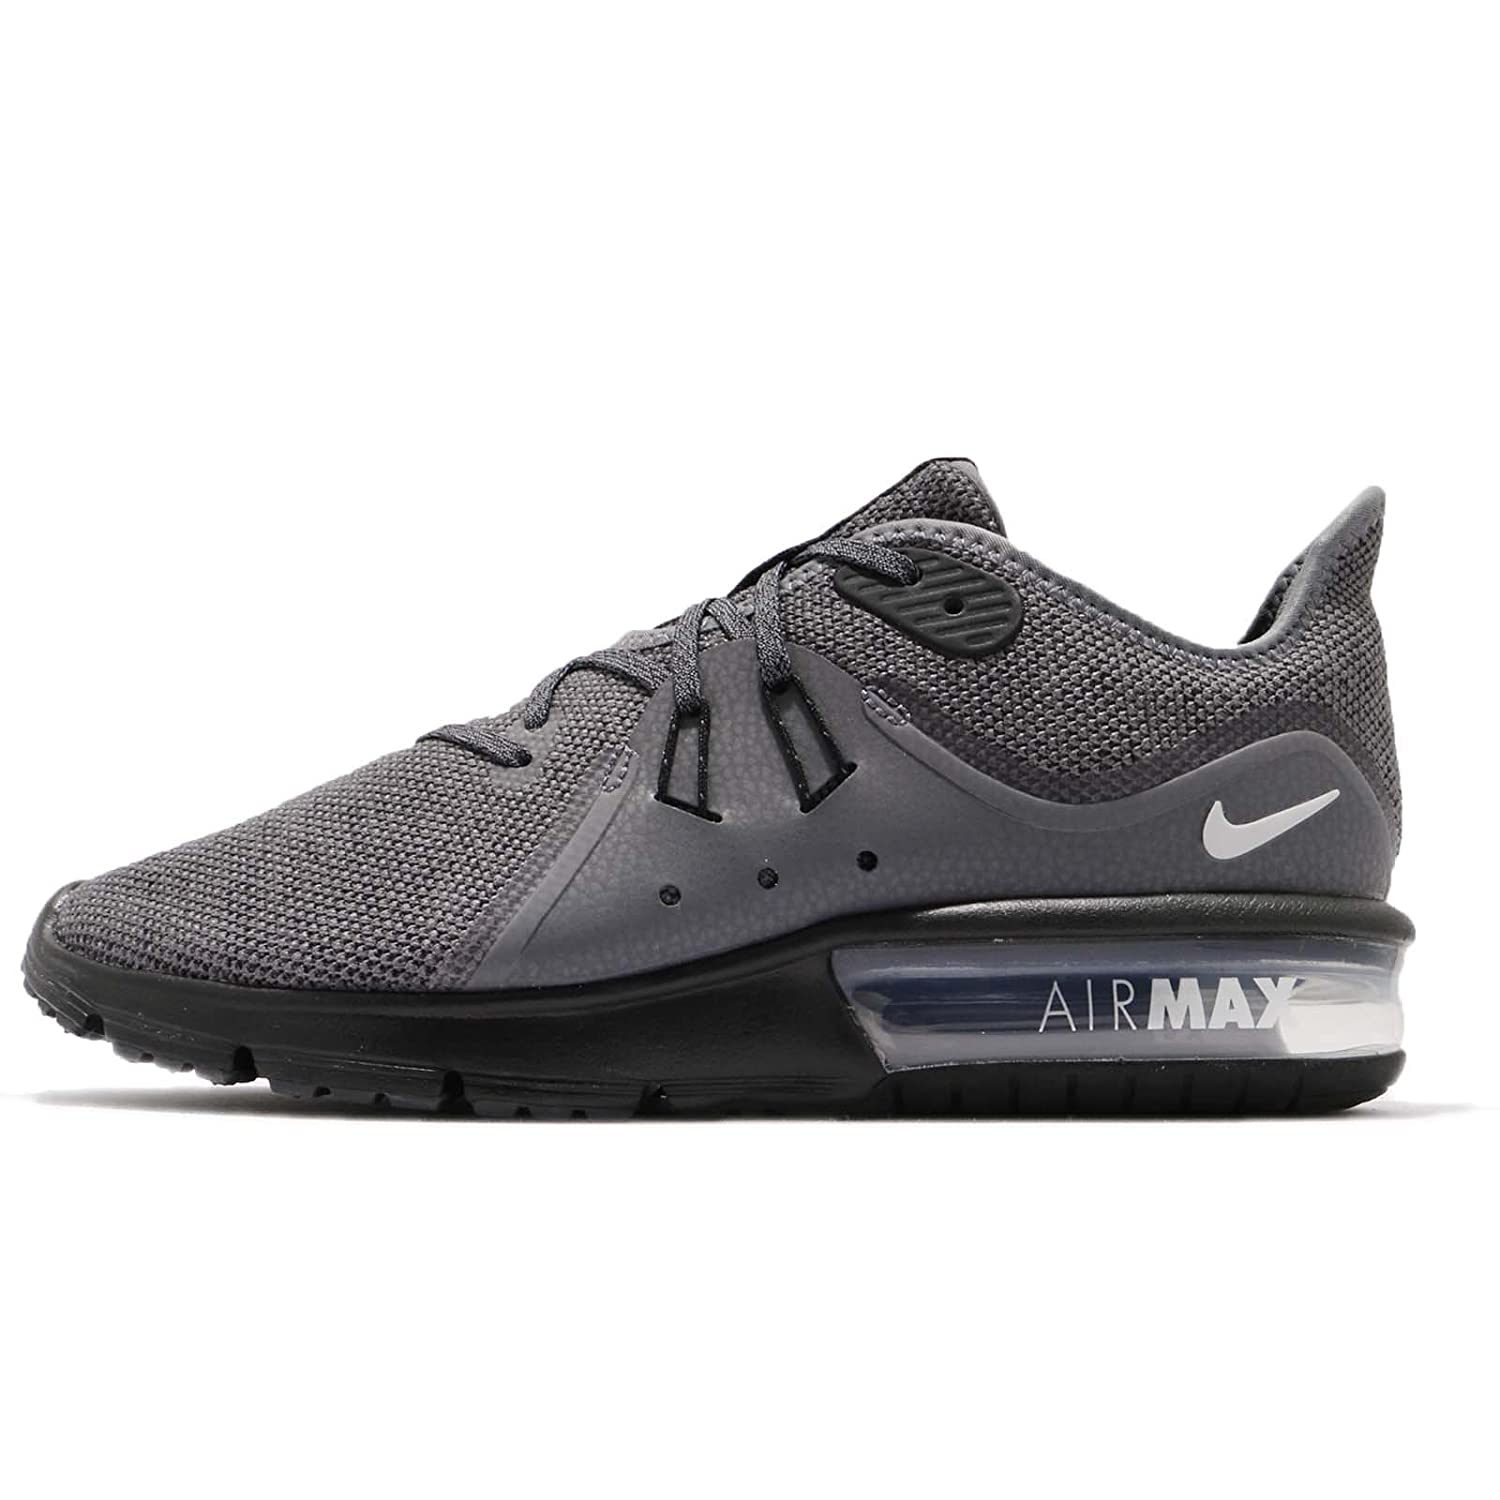 more photos 9dd86 b3310 NIKE Men s Air Max Sequent 3 Running Shoe (12 D(M) US, Dark Grey Metallic  Silver-Black)  Amazon.co.uk  Shoes   Bags